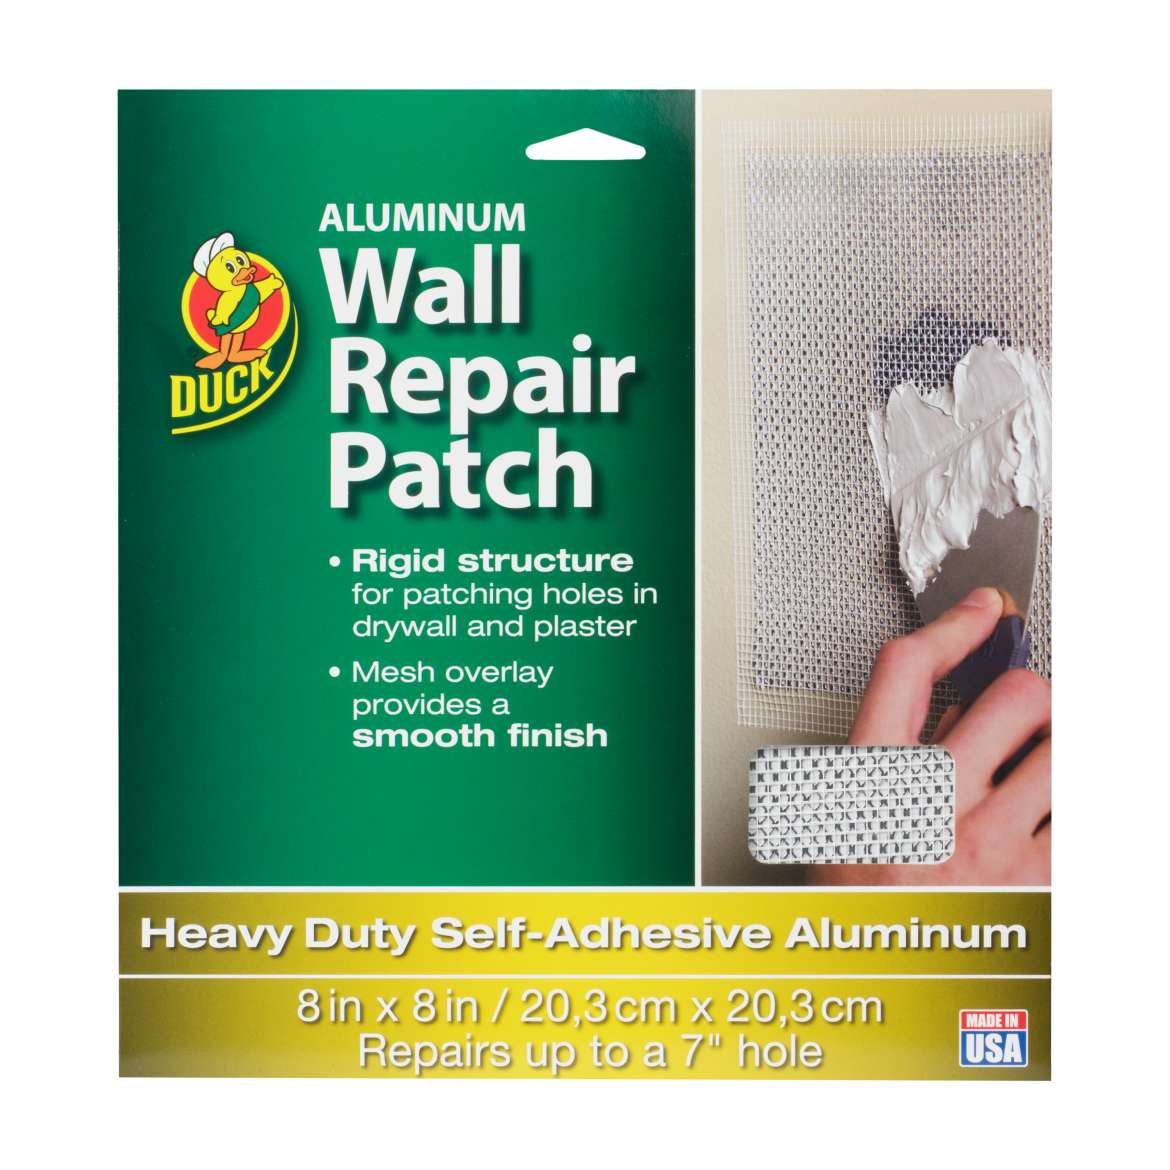 Duck® Brand Aluminum Wall Repair Patch - 8 in. x 8 in. Image